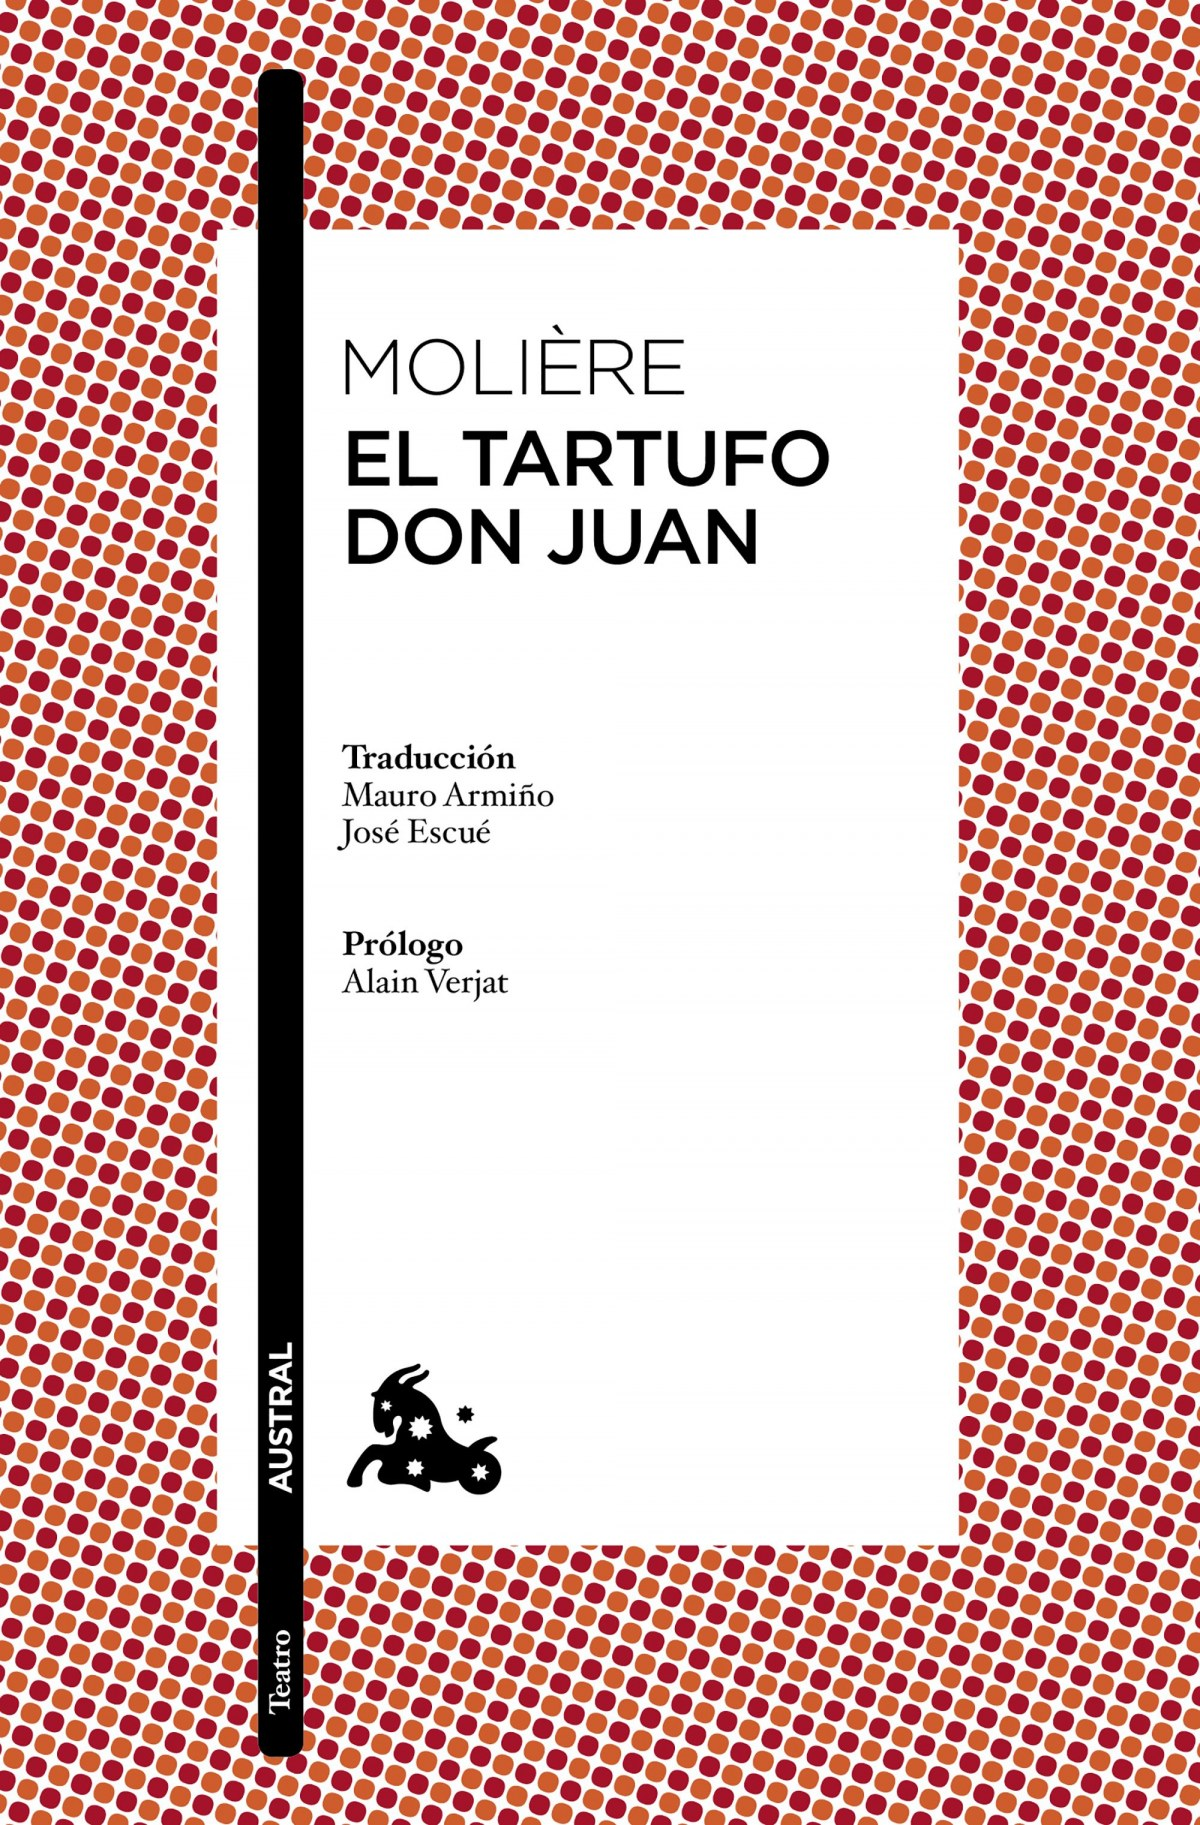 DON JUAN/TARTUFO